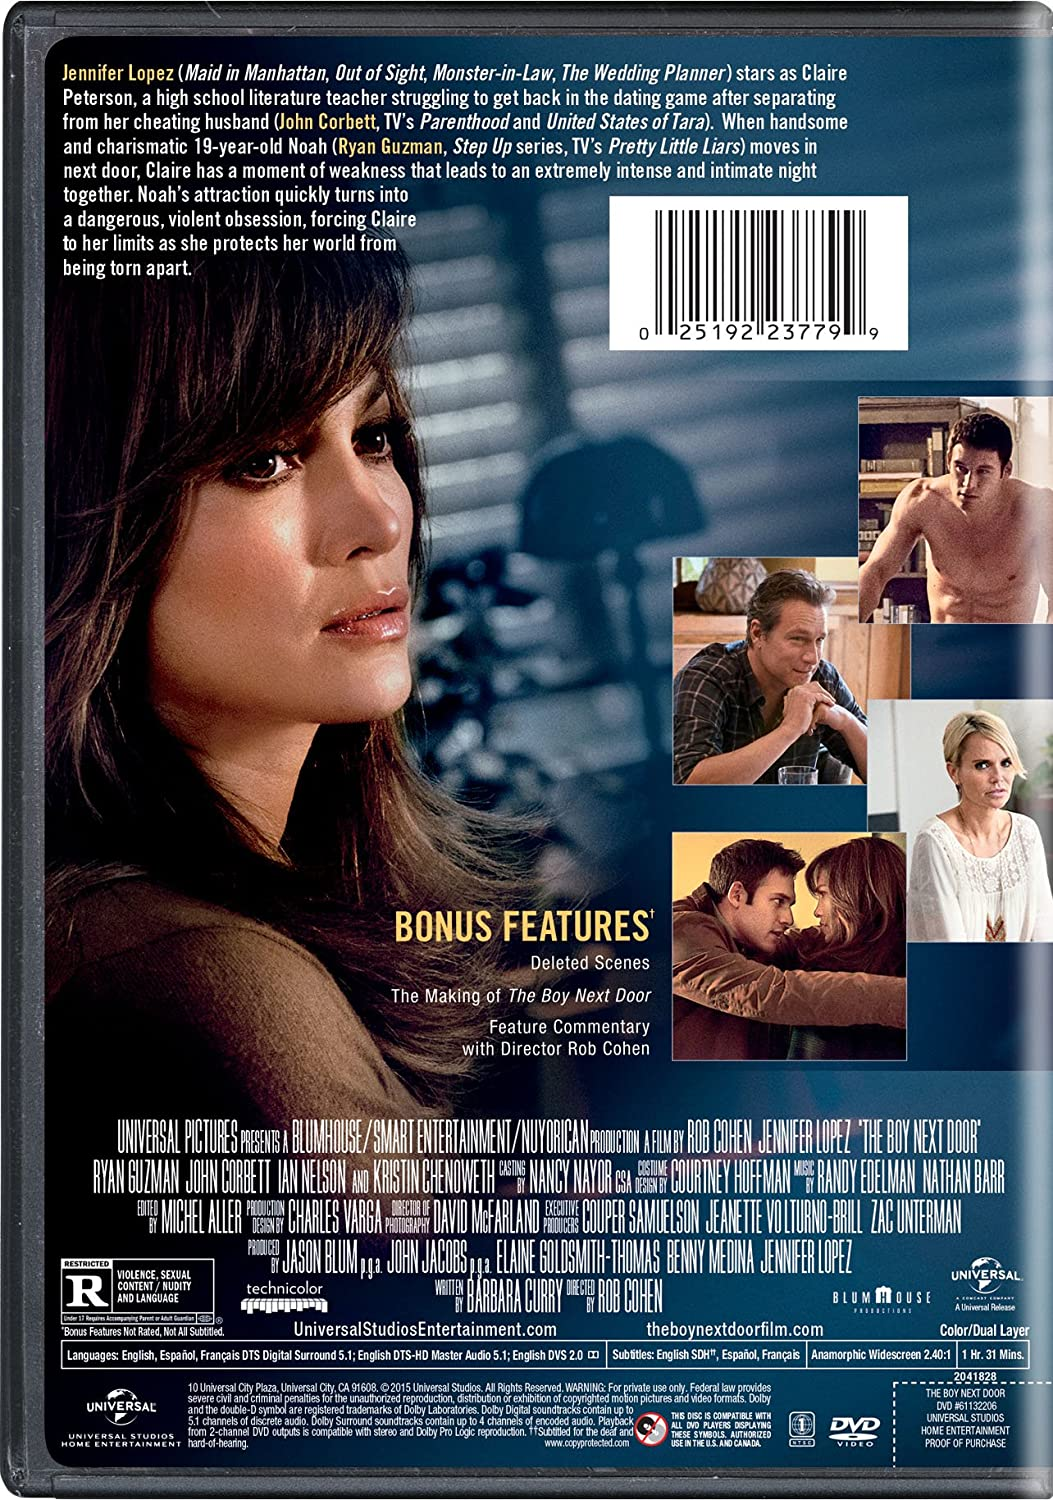 Amazon.com The Boy Next Door Jennifer Lopez Ryan Guzman John Corbett Ian Nelson Kristin Chenoweth Rob Cohen Jason Blum John Jacobs ...  sc 1 st  Amazon.com & Amazon.com: The Boy Next Door: Jennifer Lopez Ryan Guzman John ...